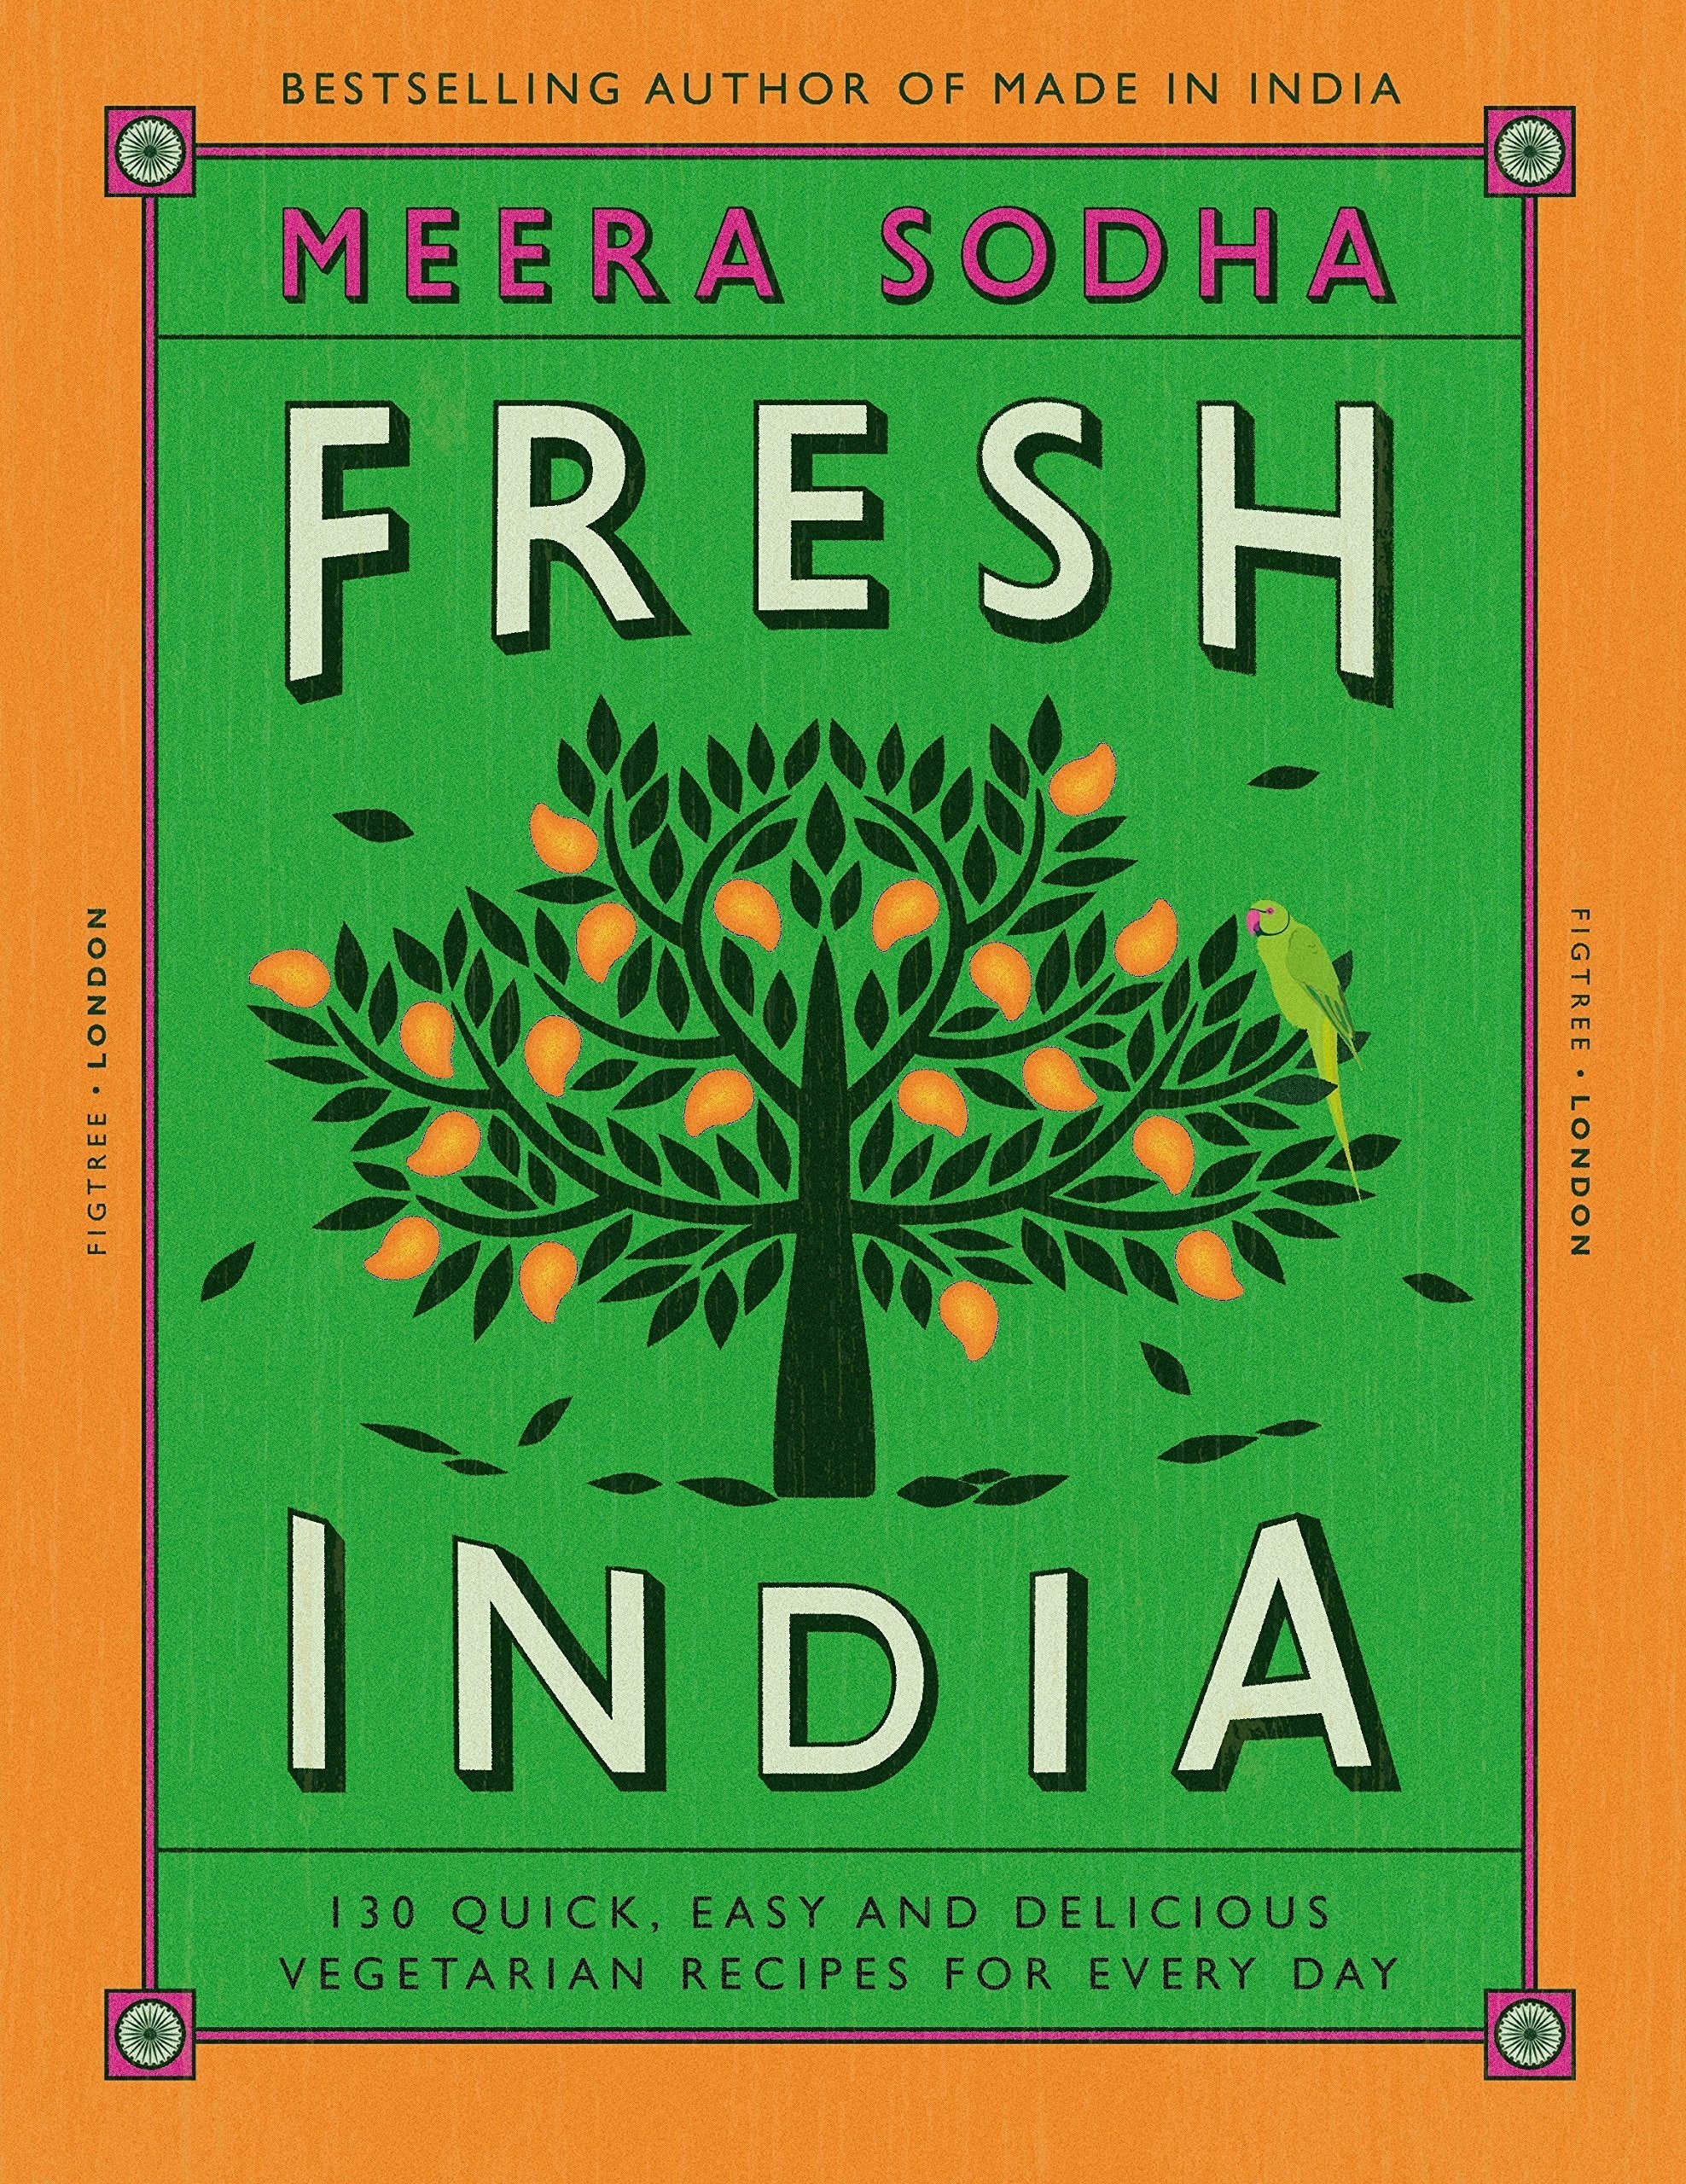 'Fresh India' by Meera Sodha & Spice Tin, 9 Spices & Handmade Silk Sari Wrap - Spice Kitchen - Spices, Spice Blends, Gifts & Cookware